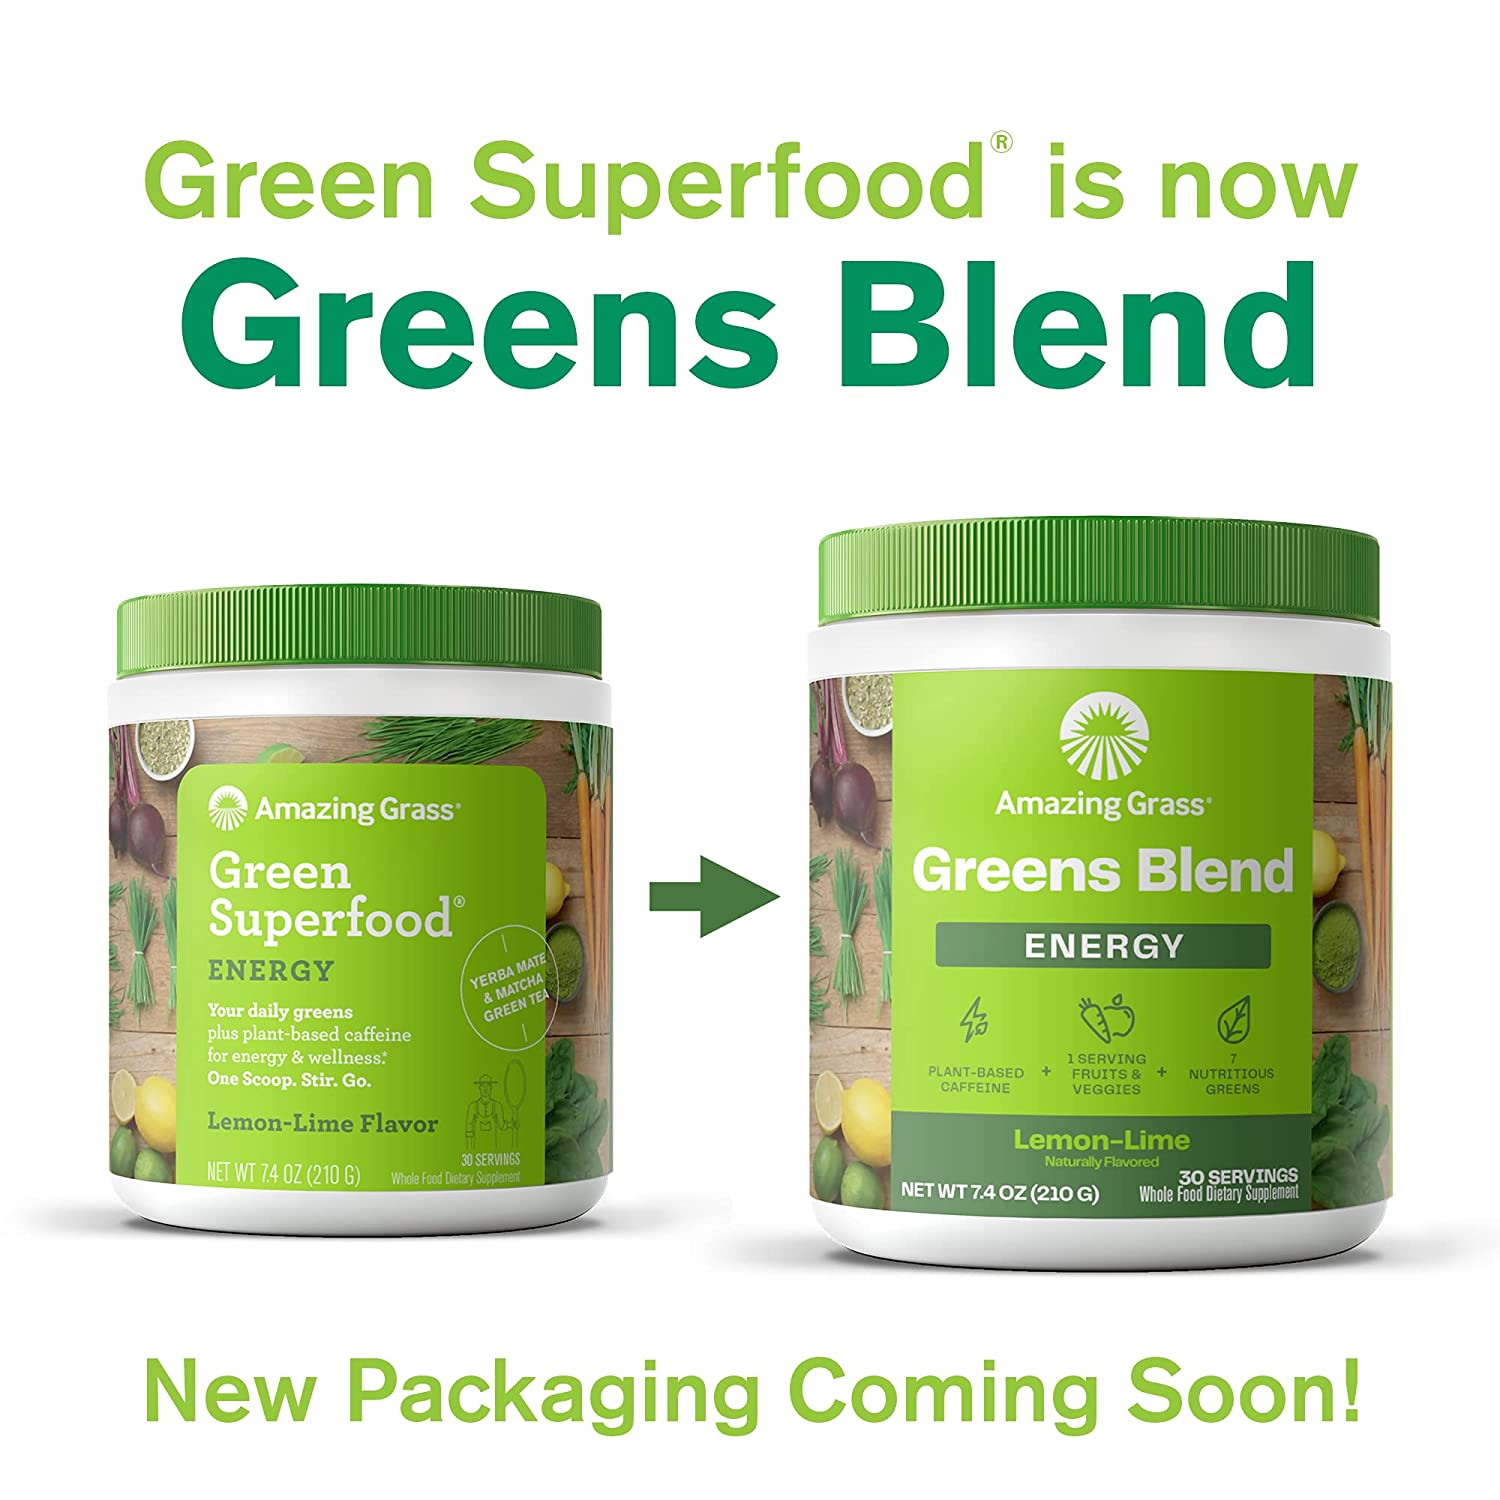 Amazing Grass Green Superfood Energy Super Greens Powder & Plant Based  Caffeine with Green Tea and Flax Seed, Nootropics Support, Lemon Lime, 8  ...